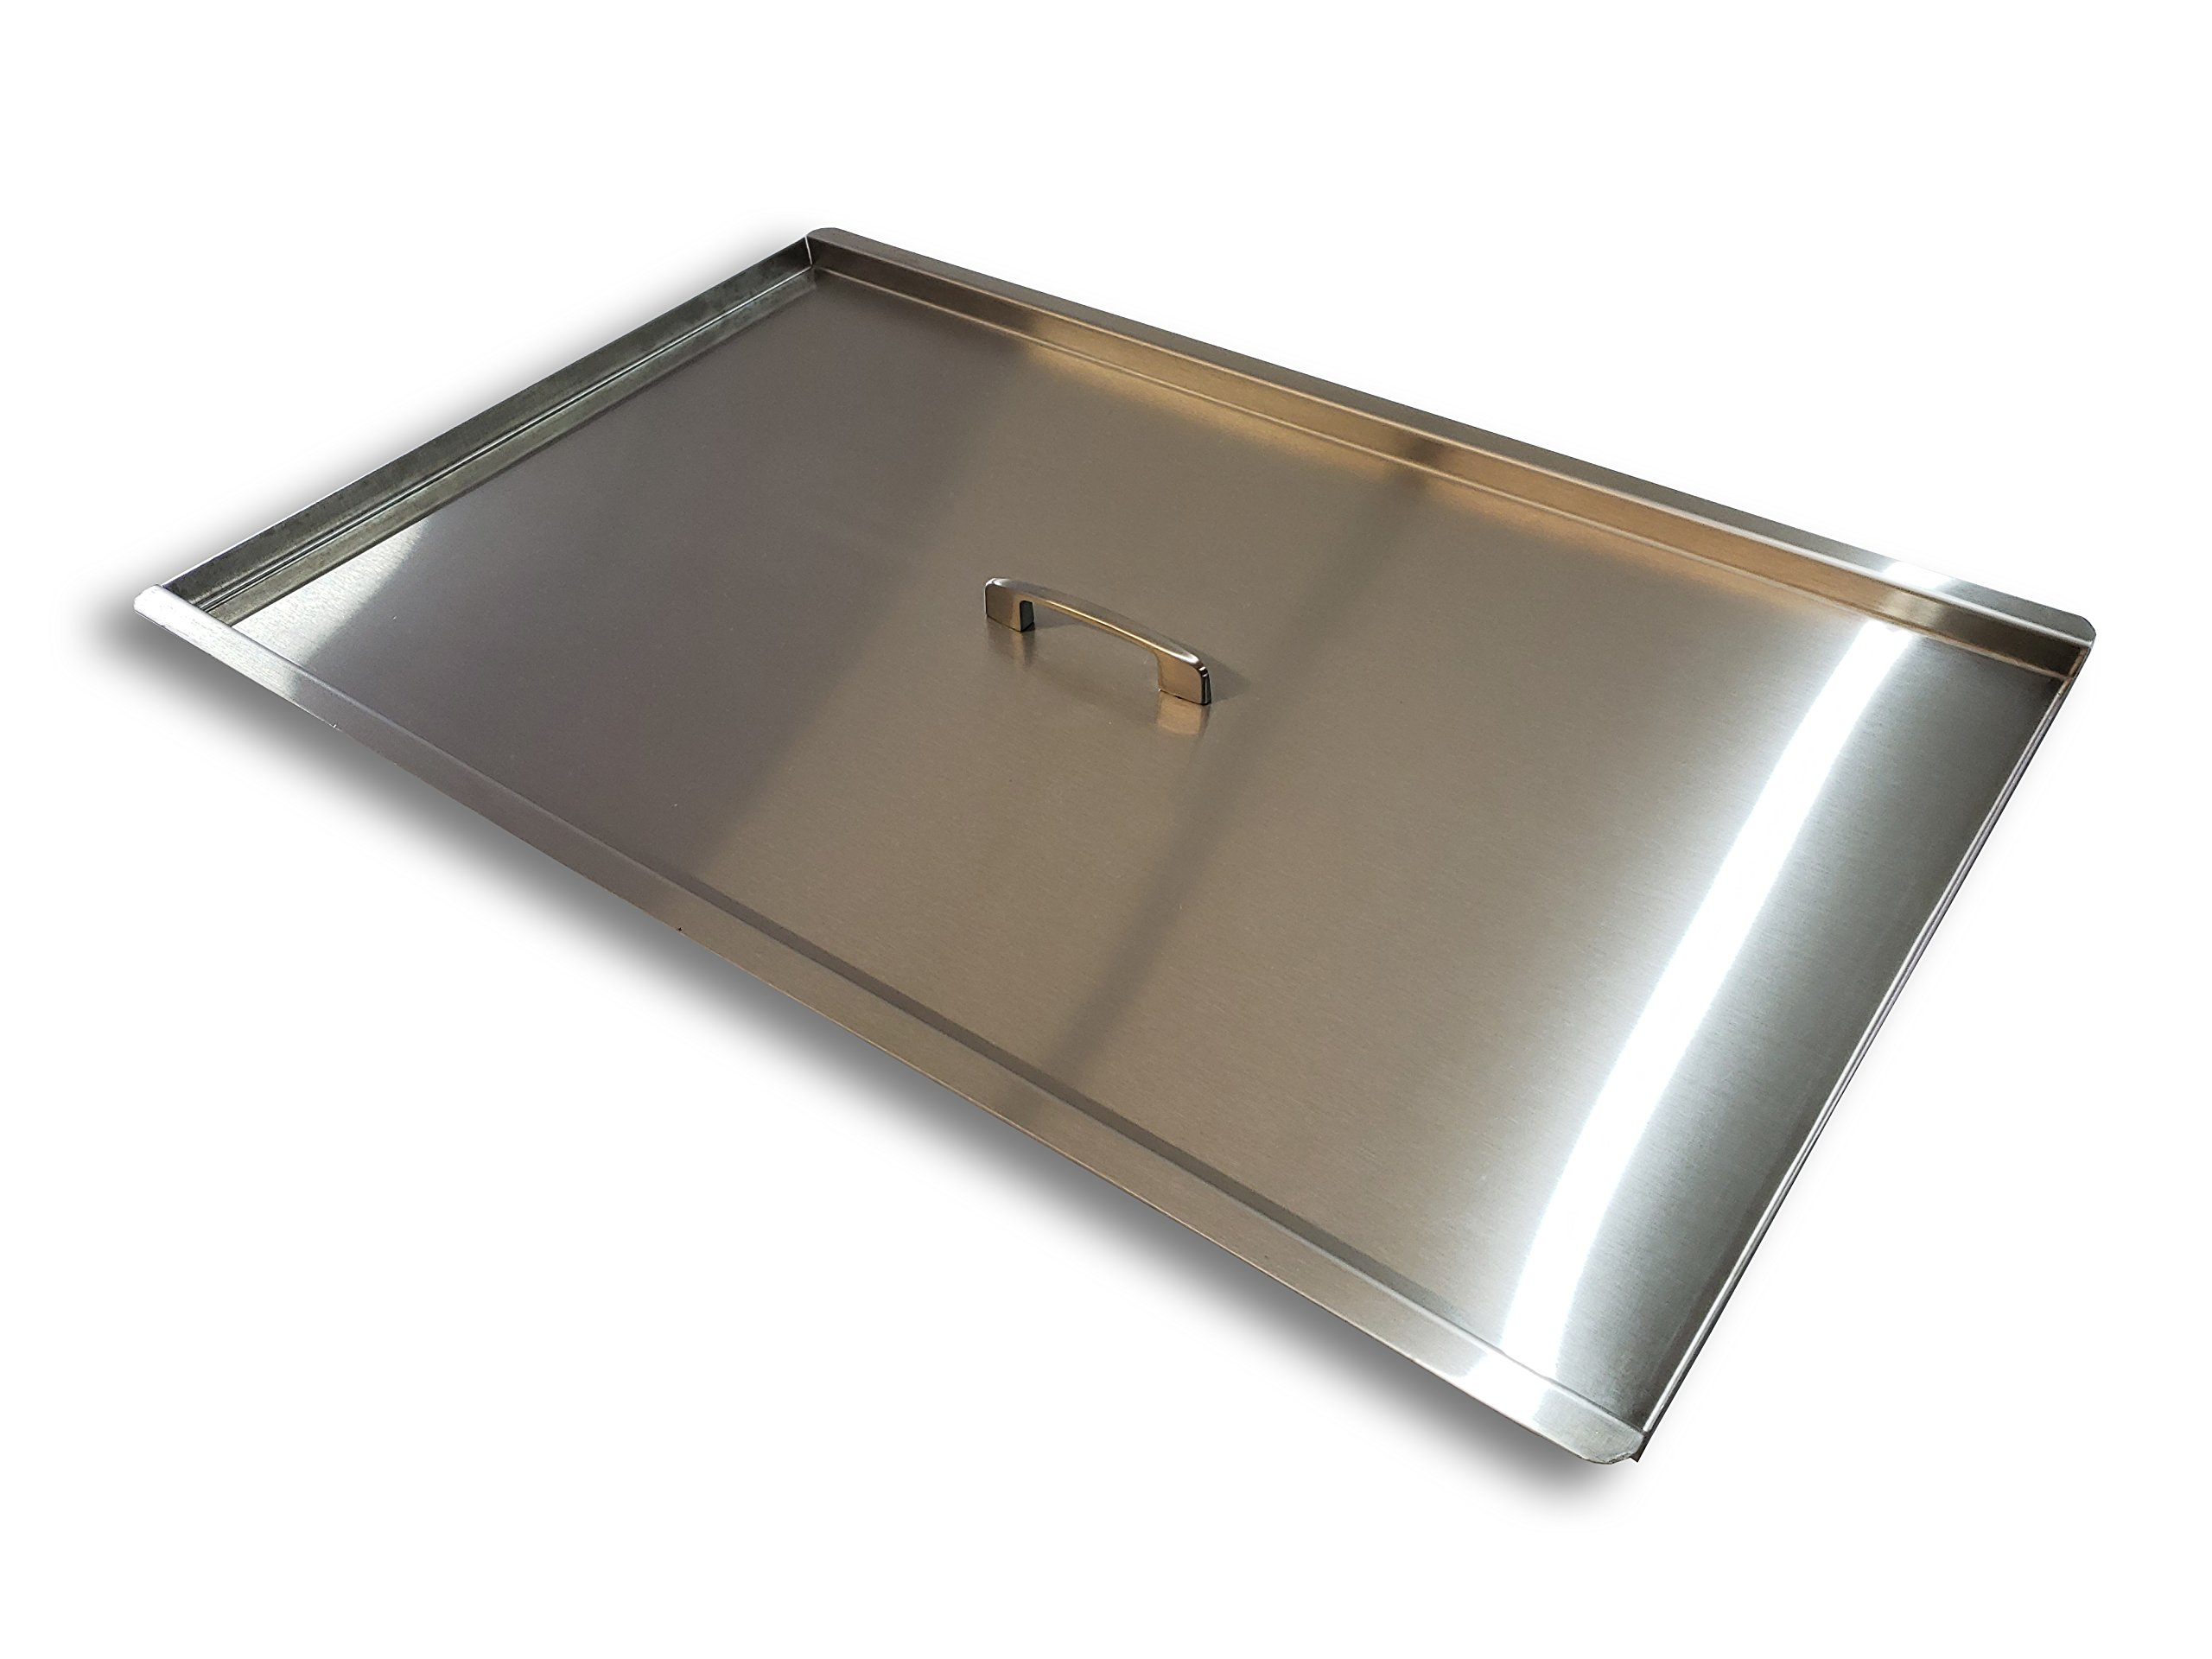 Commercial Fryer Cover for 40lb and 50lb fryers - Stainless Steel - Food Truck